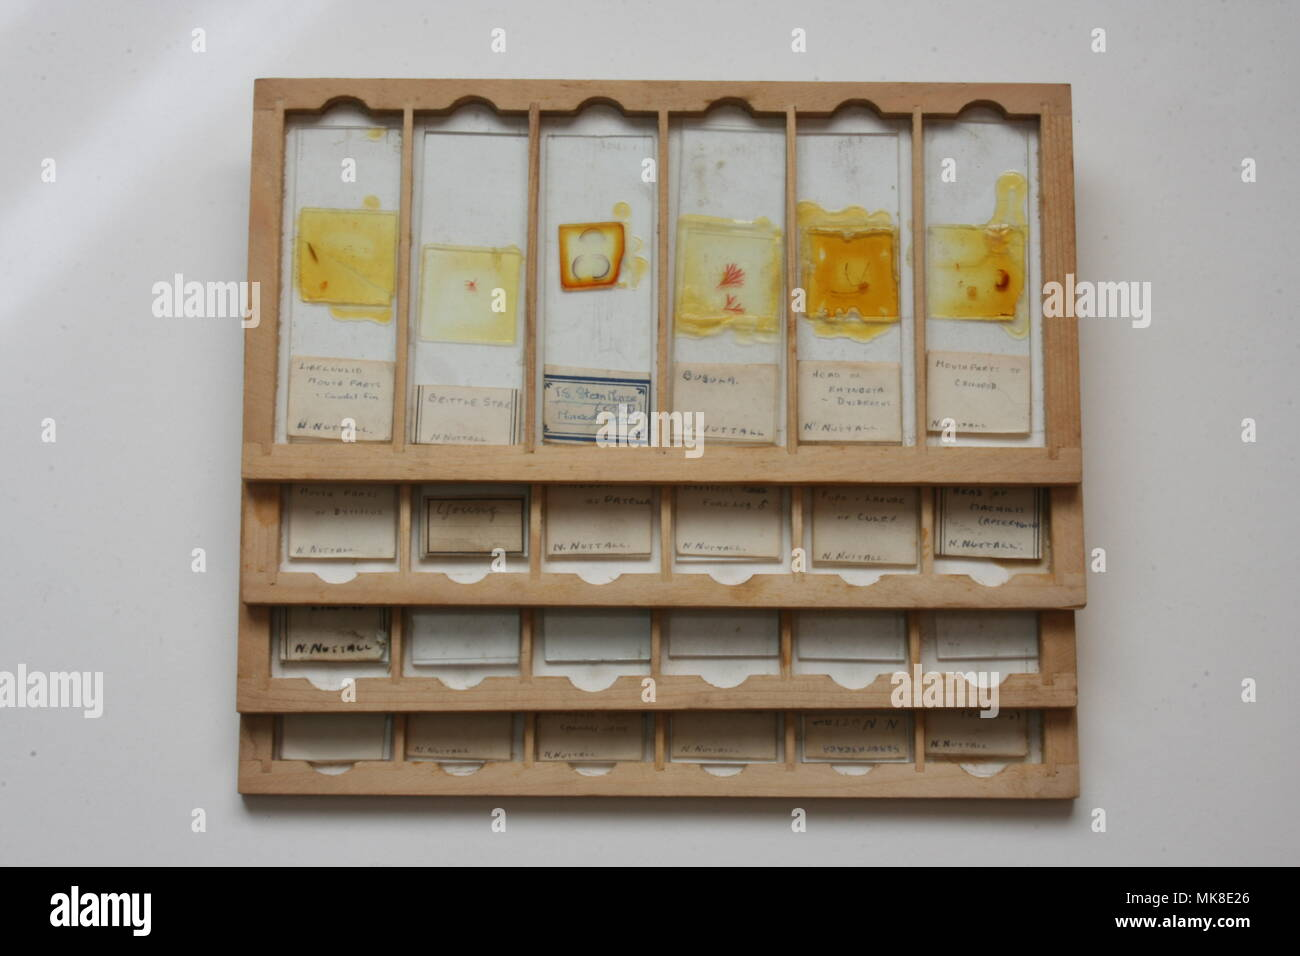 Microscope Slides in wooden tray - Stock Image